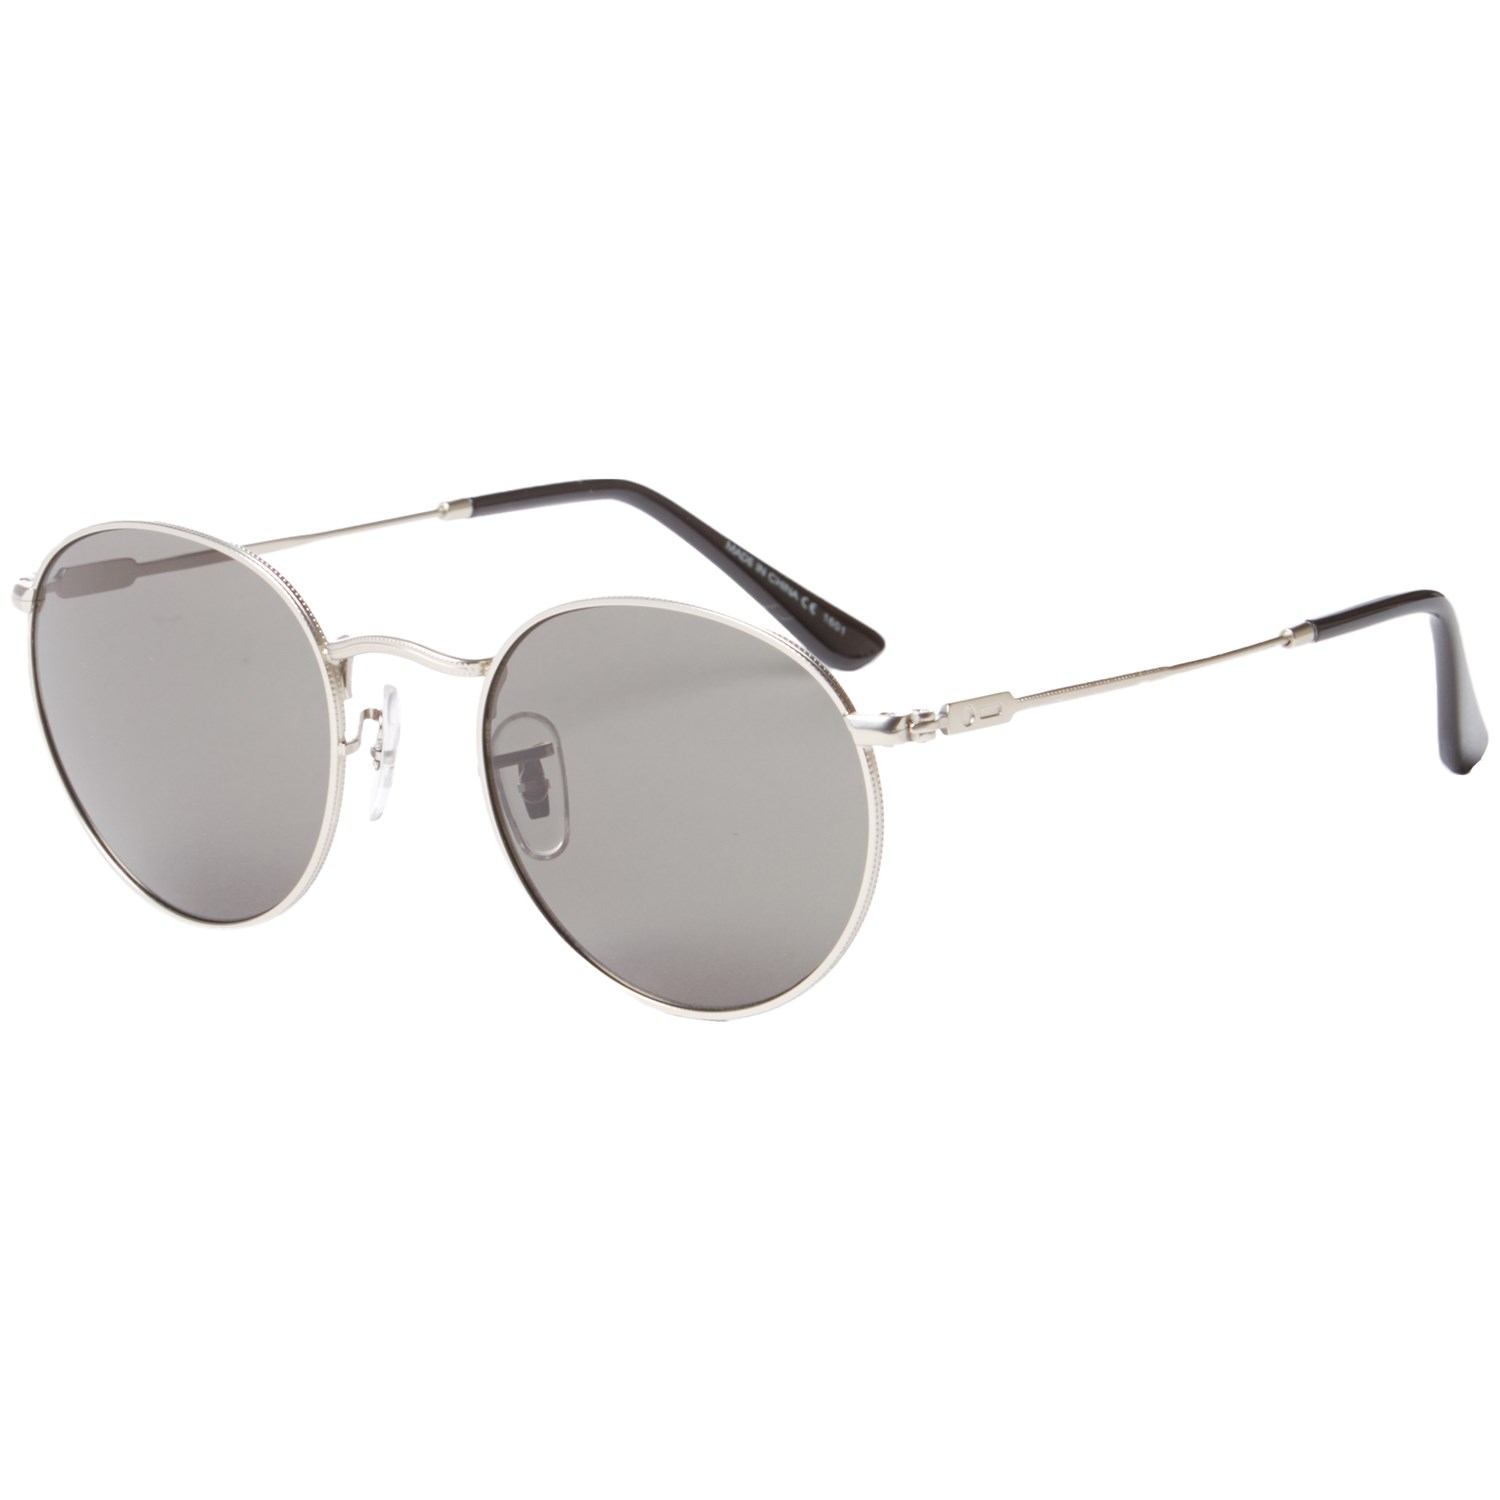 Sunglass Components  sunglasses style and face shape evo